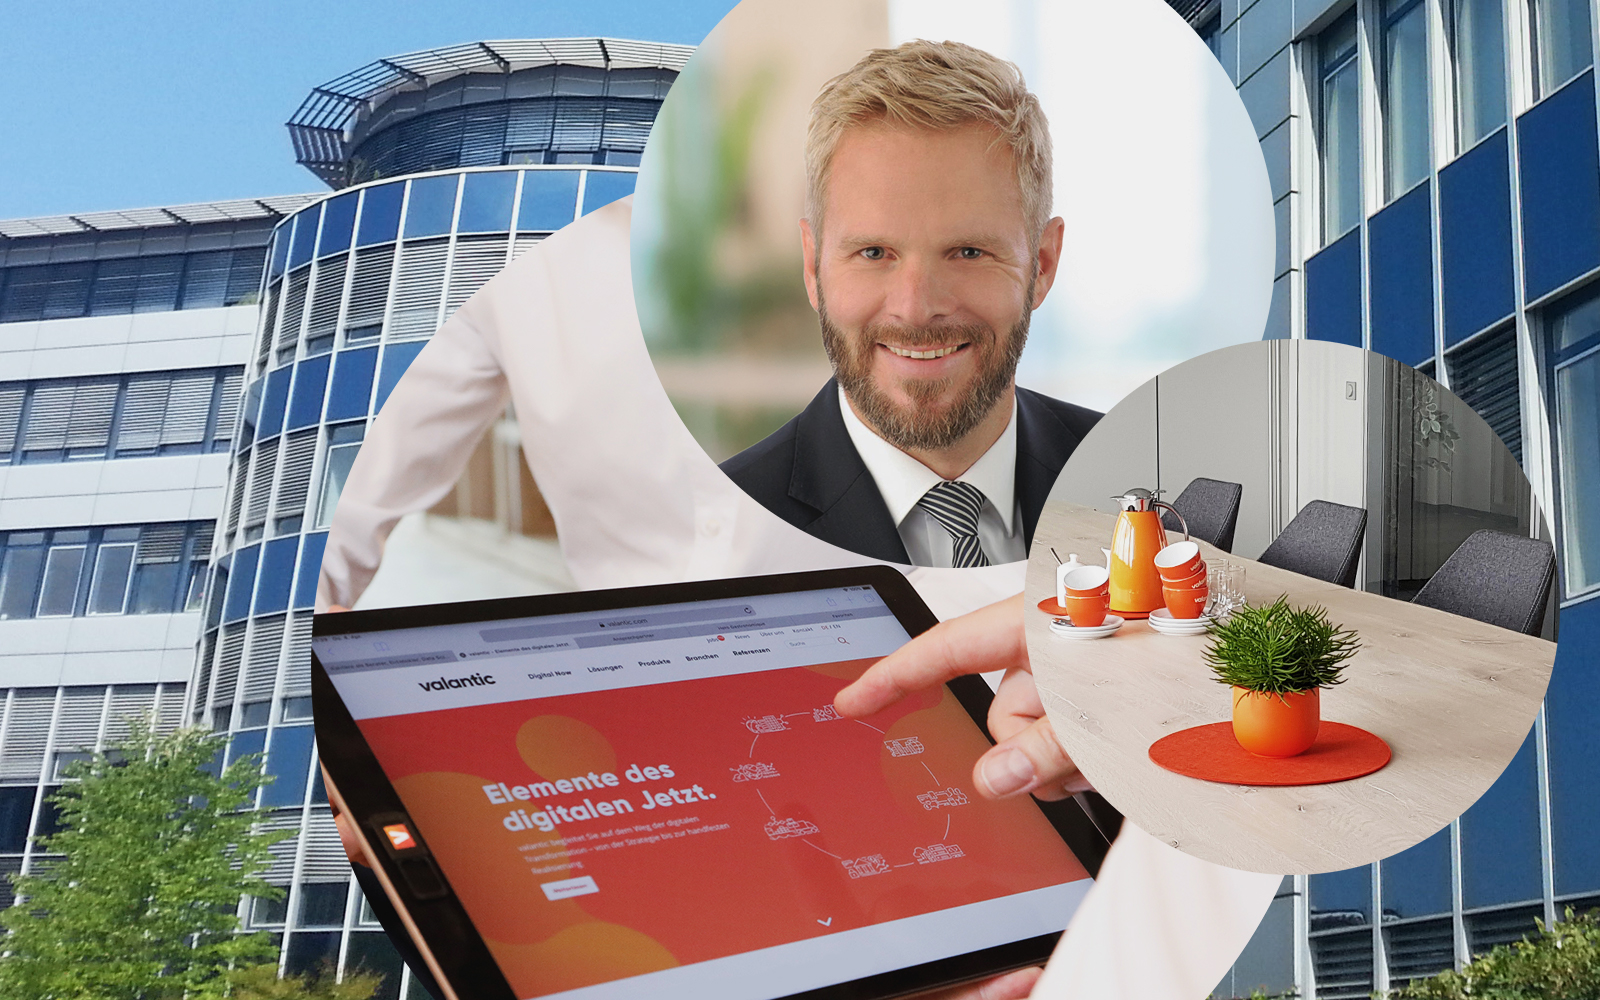 Image of Thomas Latajka, Managing Director at valantic ERP, office in Langenfeld, conference room, valantic website on a tablet computer